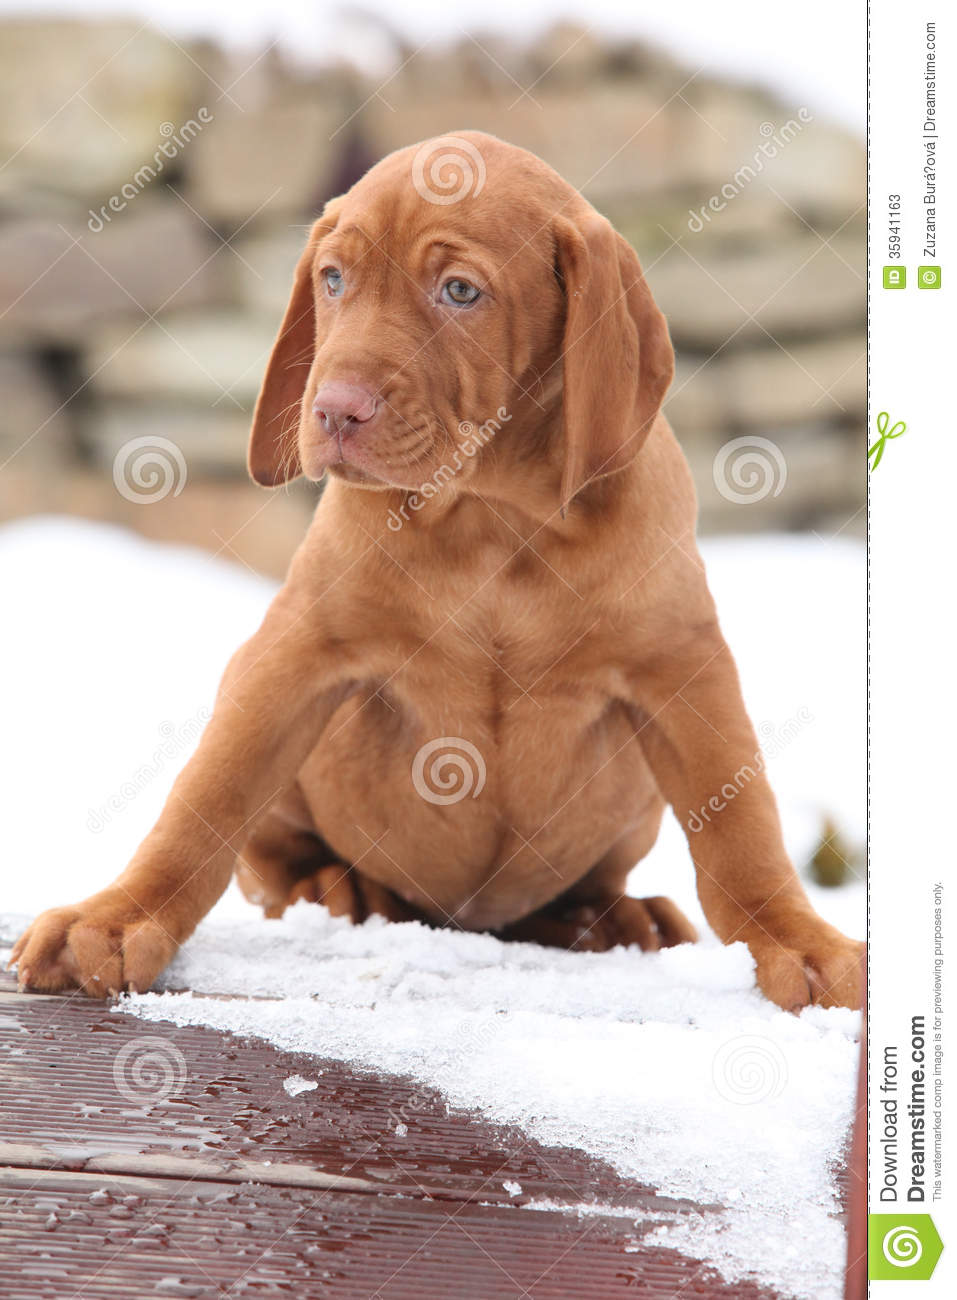 Hungarian Short Haired Pointing Dog In Winter Stock Image Image Of Drift Doggy 35941163